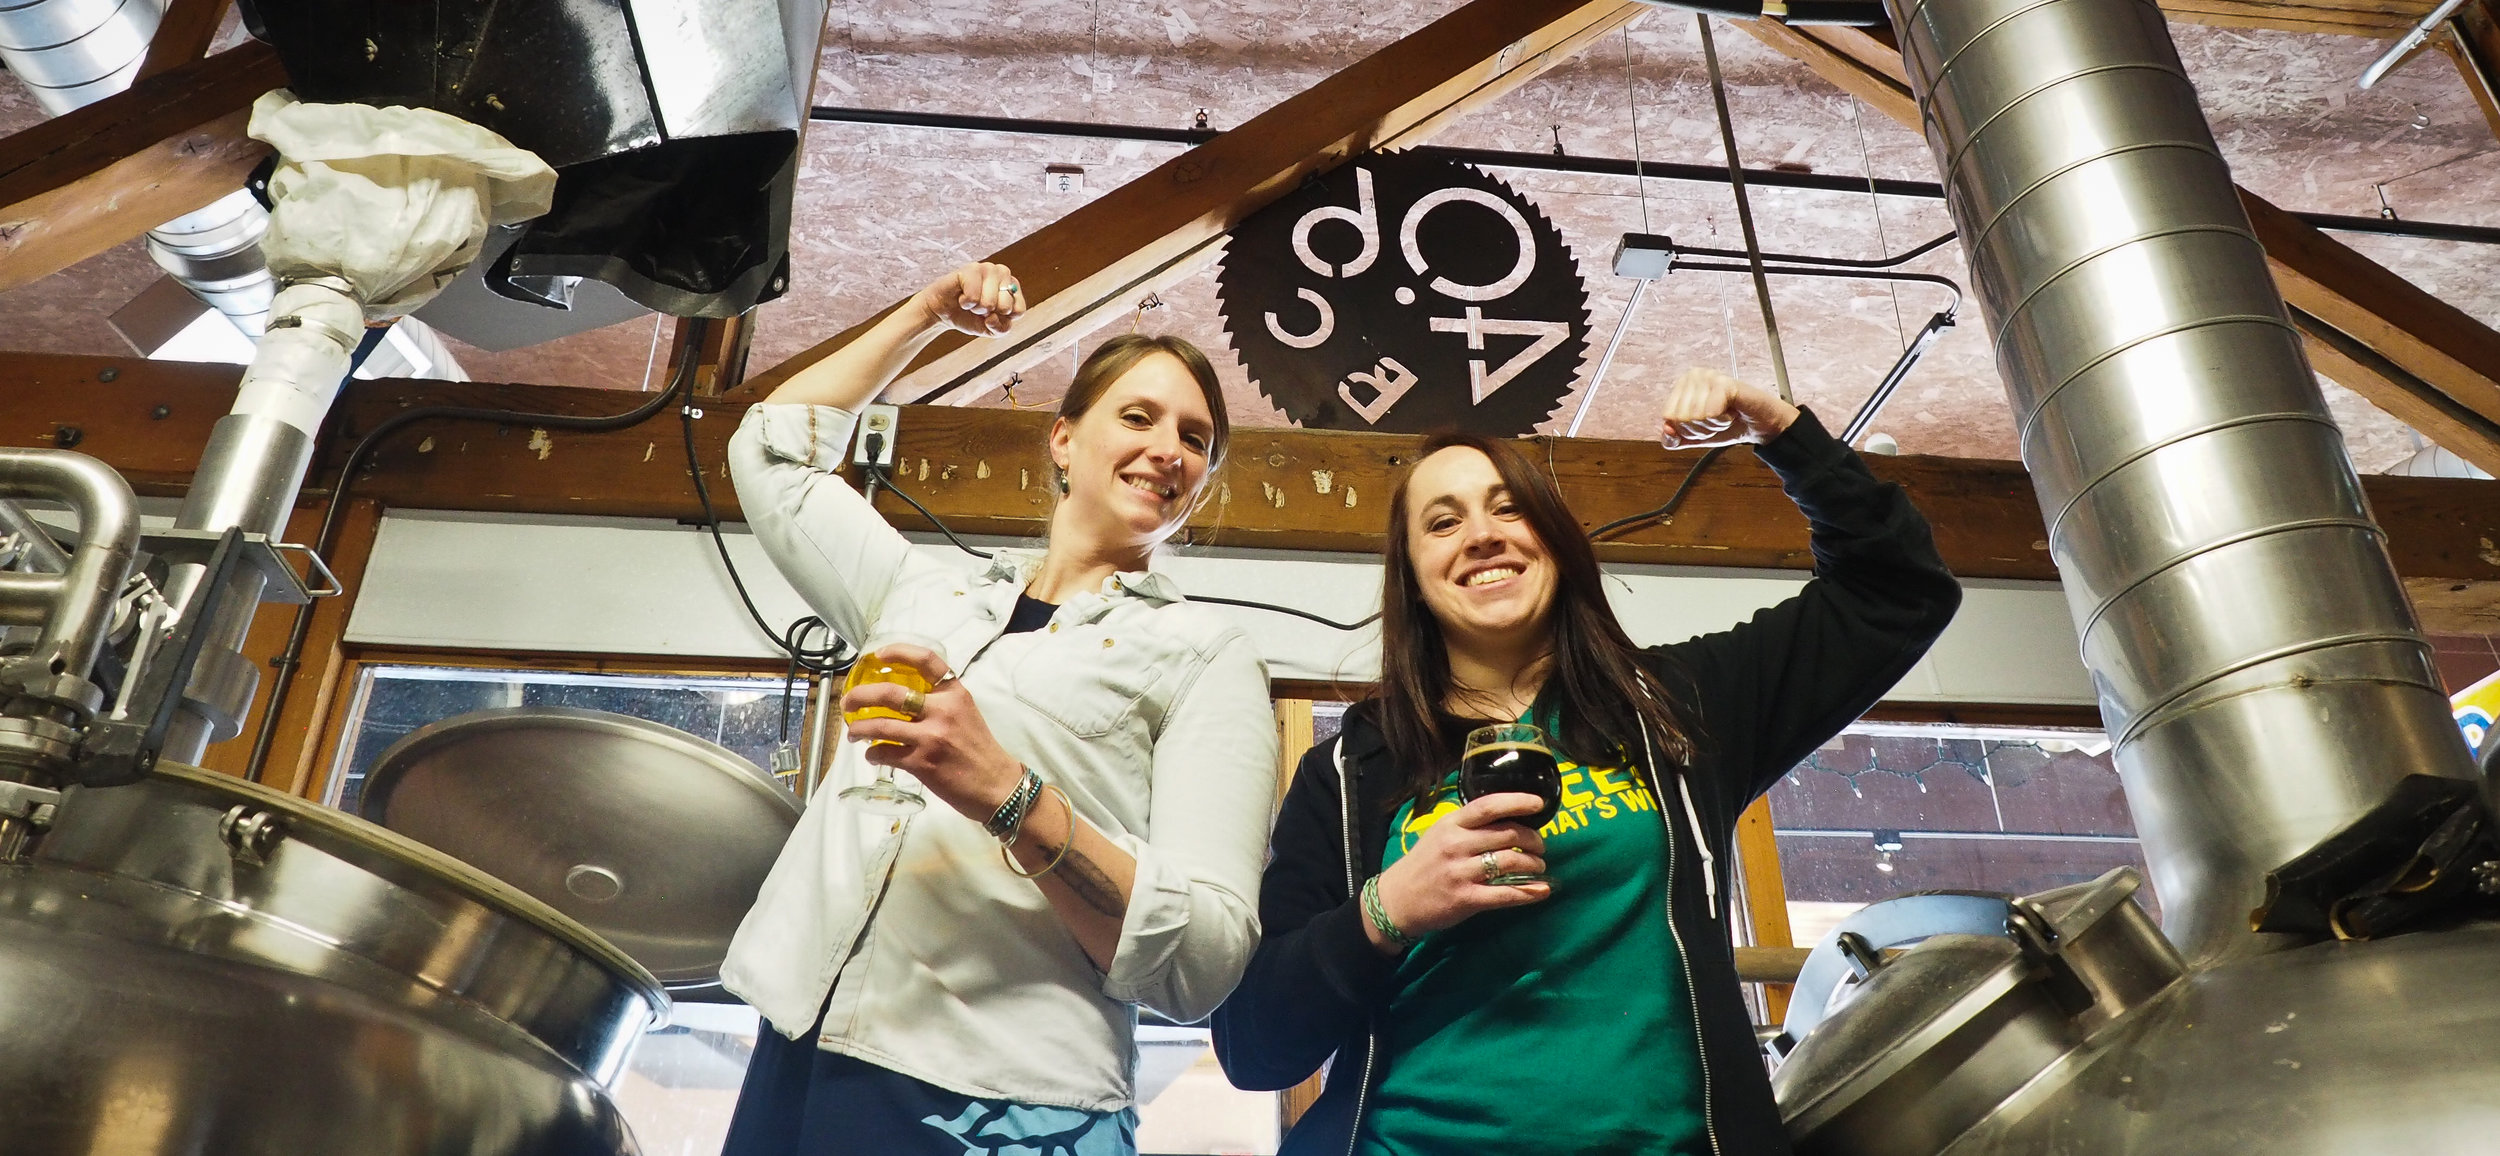 We're the women behind Bozeman Craft Beer Week! Pictured: Loy Maierhauser (left), Jesse Bussard (right)